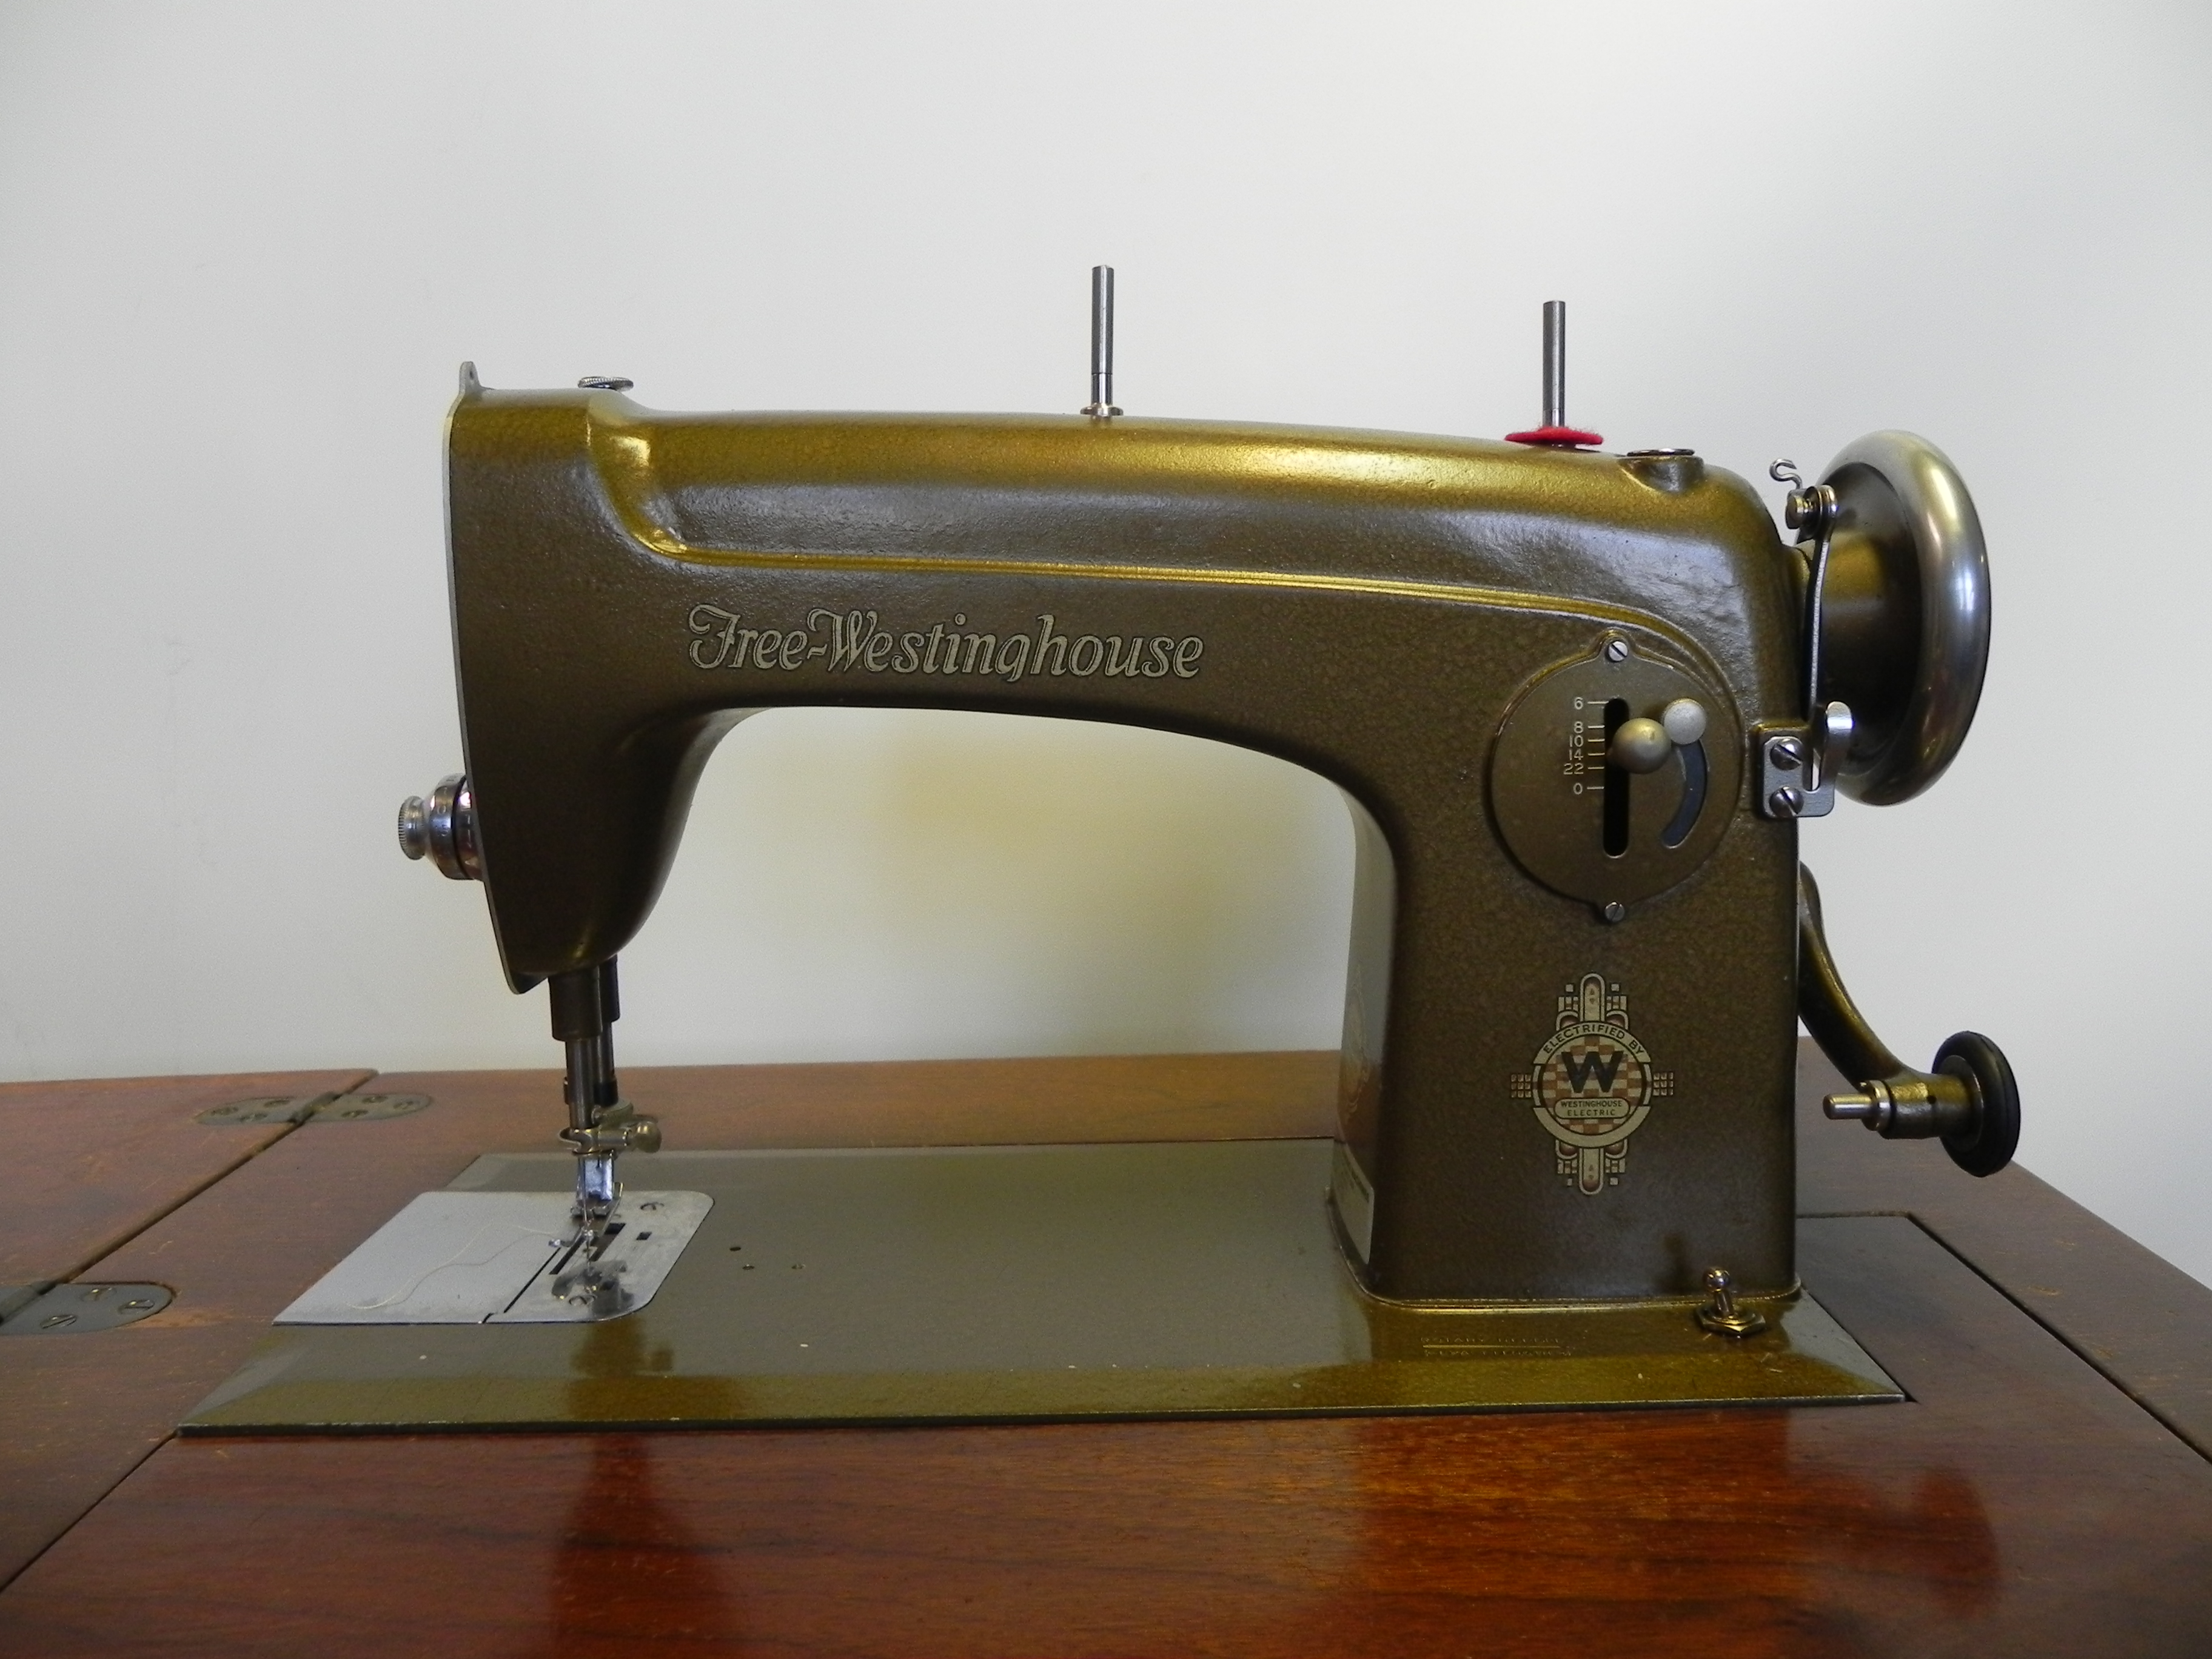 Sewing Machine Free Westinghouse Model Alc